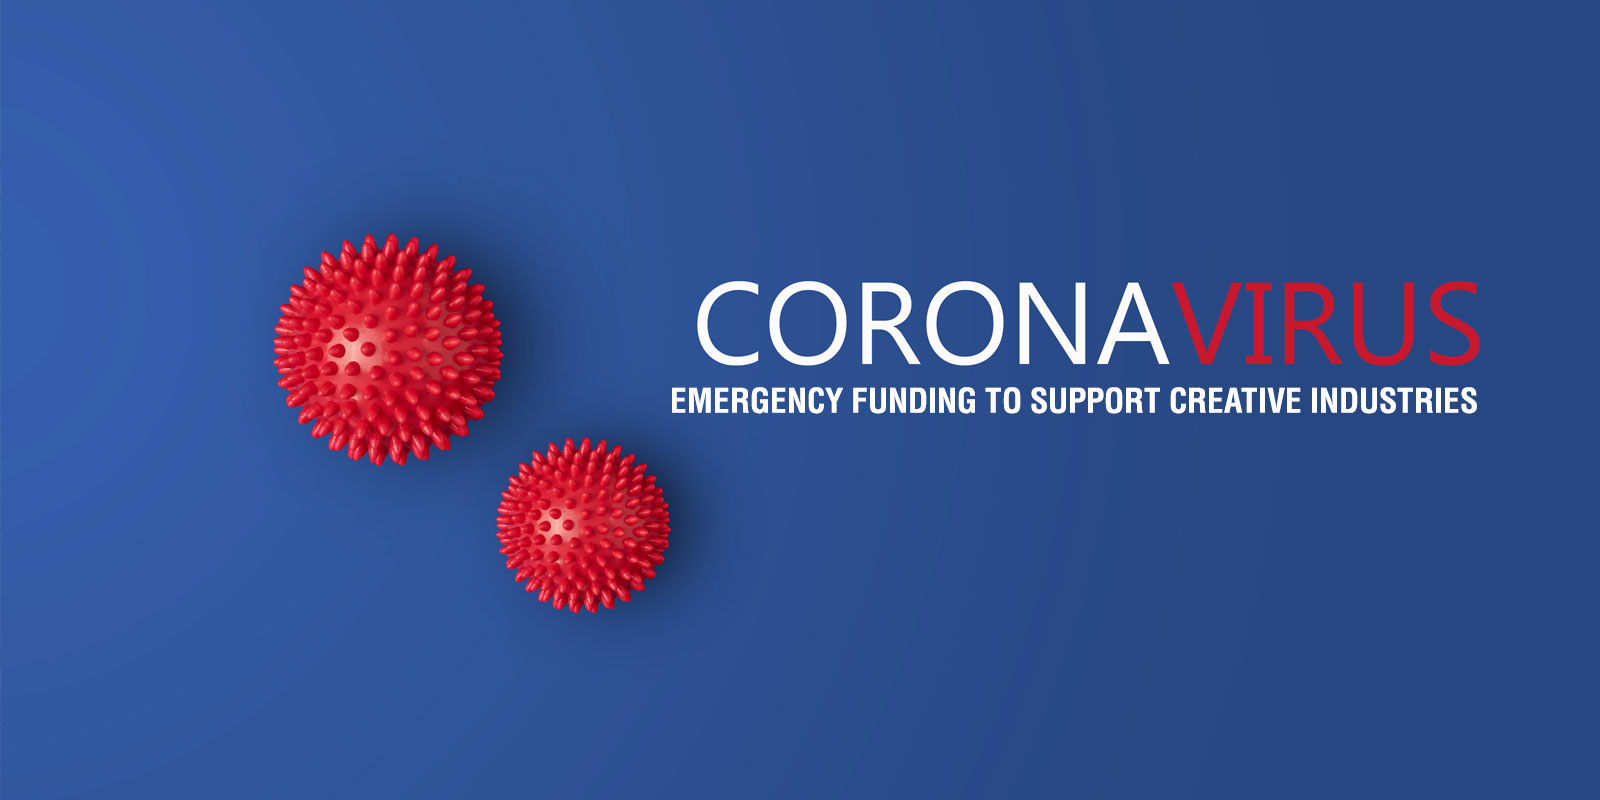 Emergency funding to support creative industries impacted by the coronavirus crisis